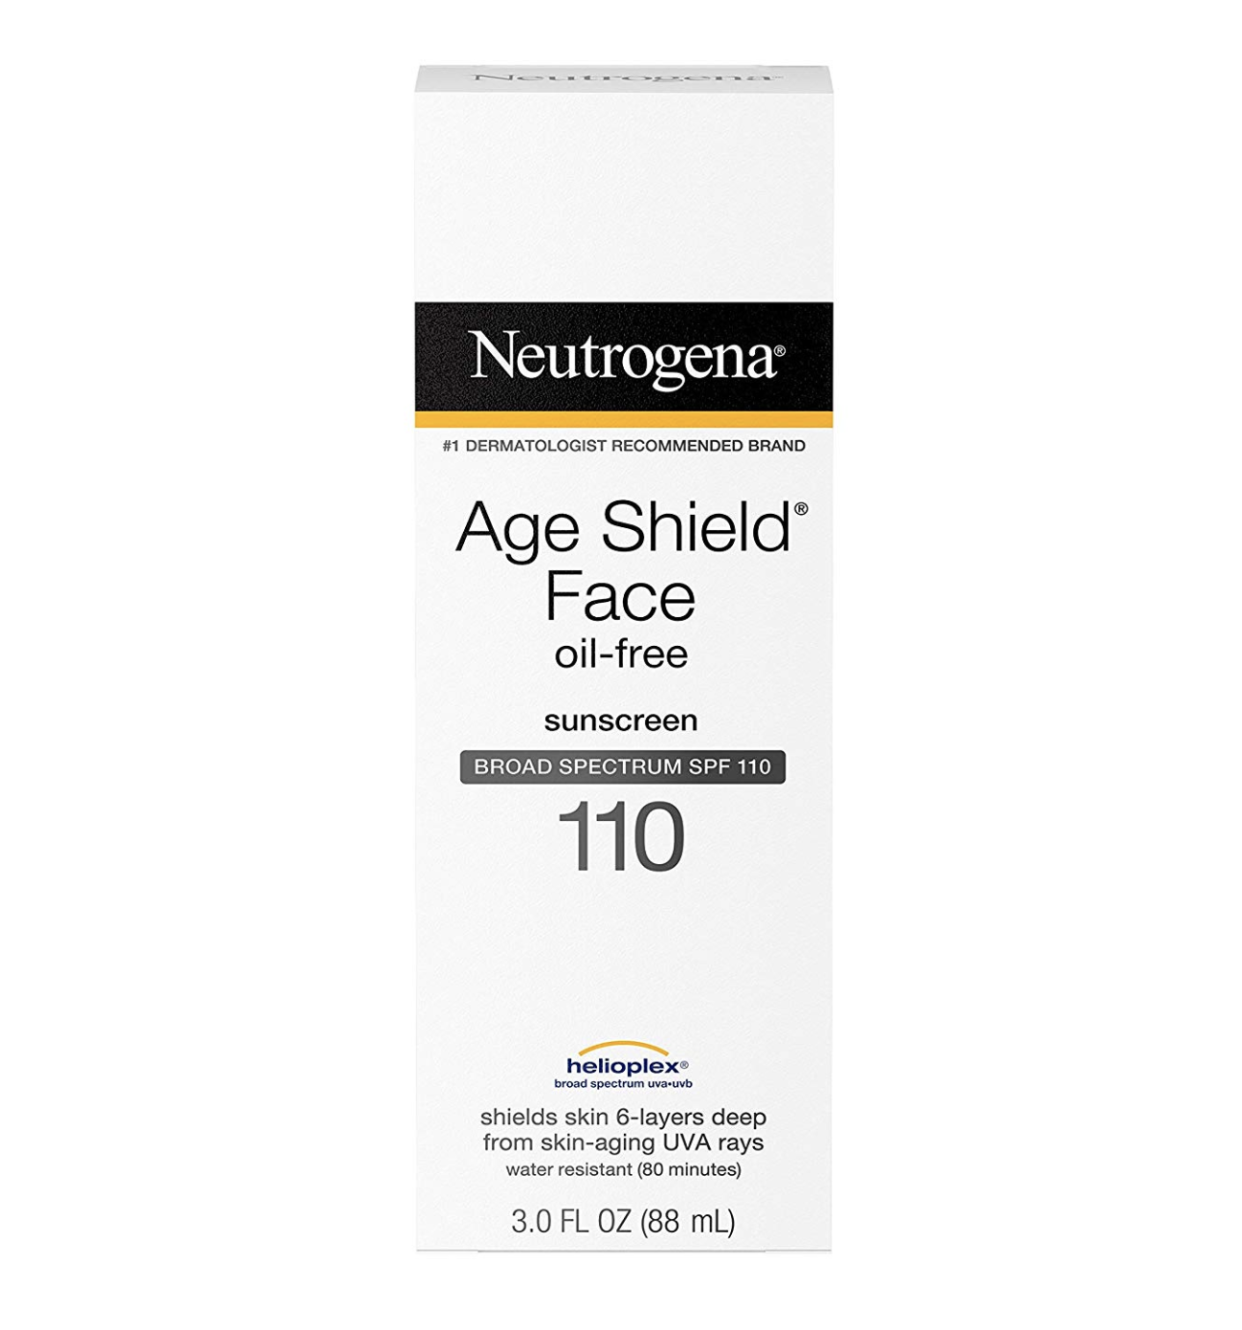 Neutrogena Age Shield Face Lotion Sunscreen with Broad Spectrum SPF 100